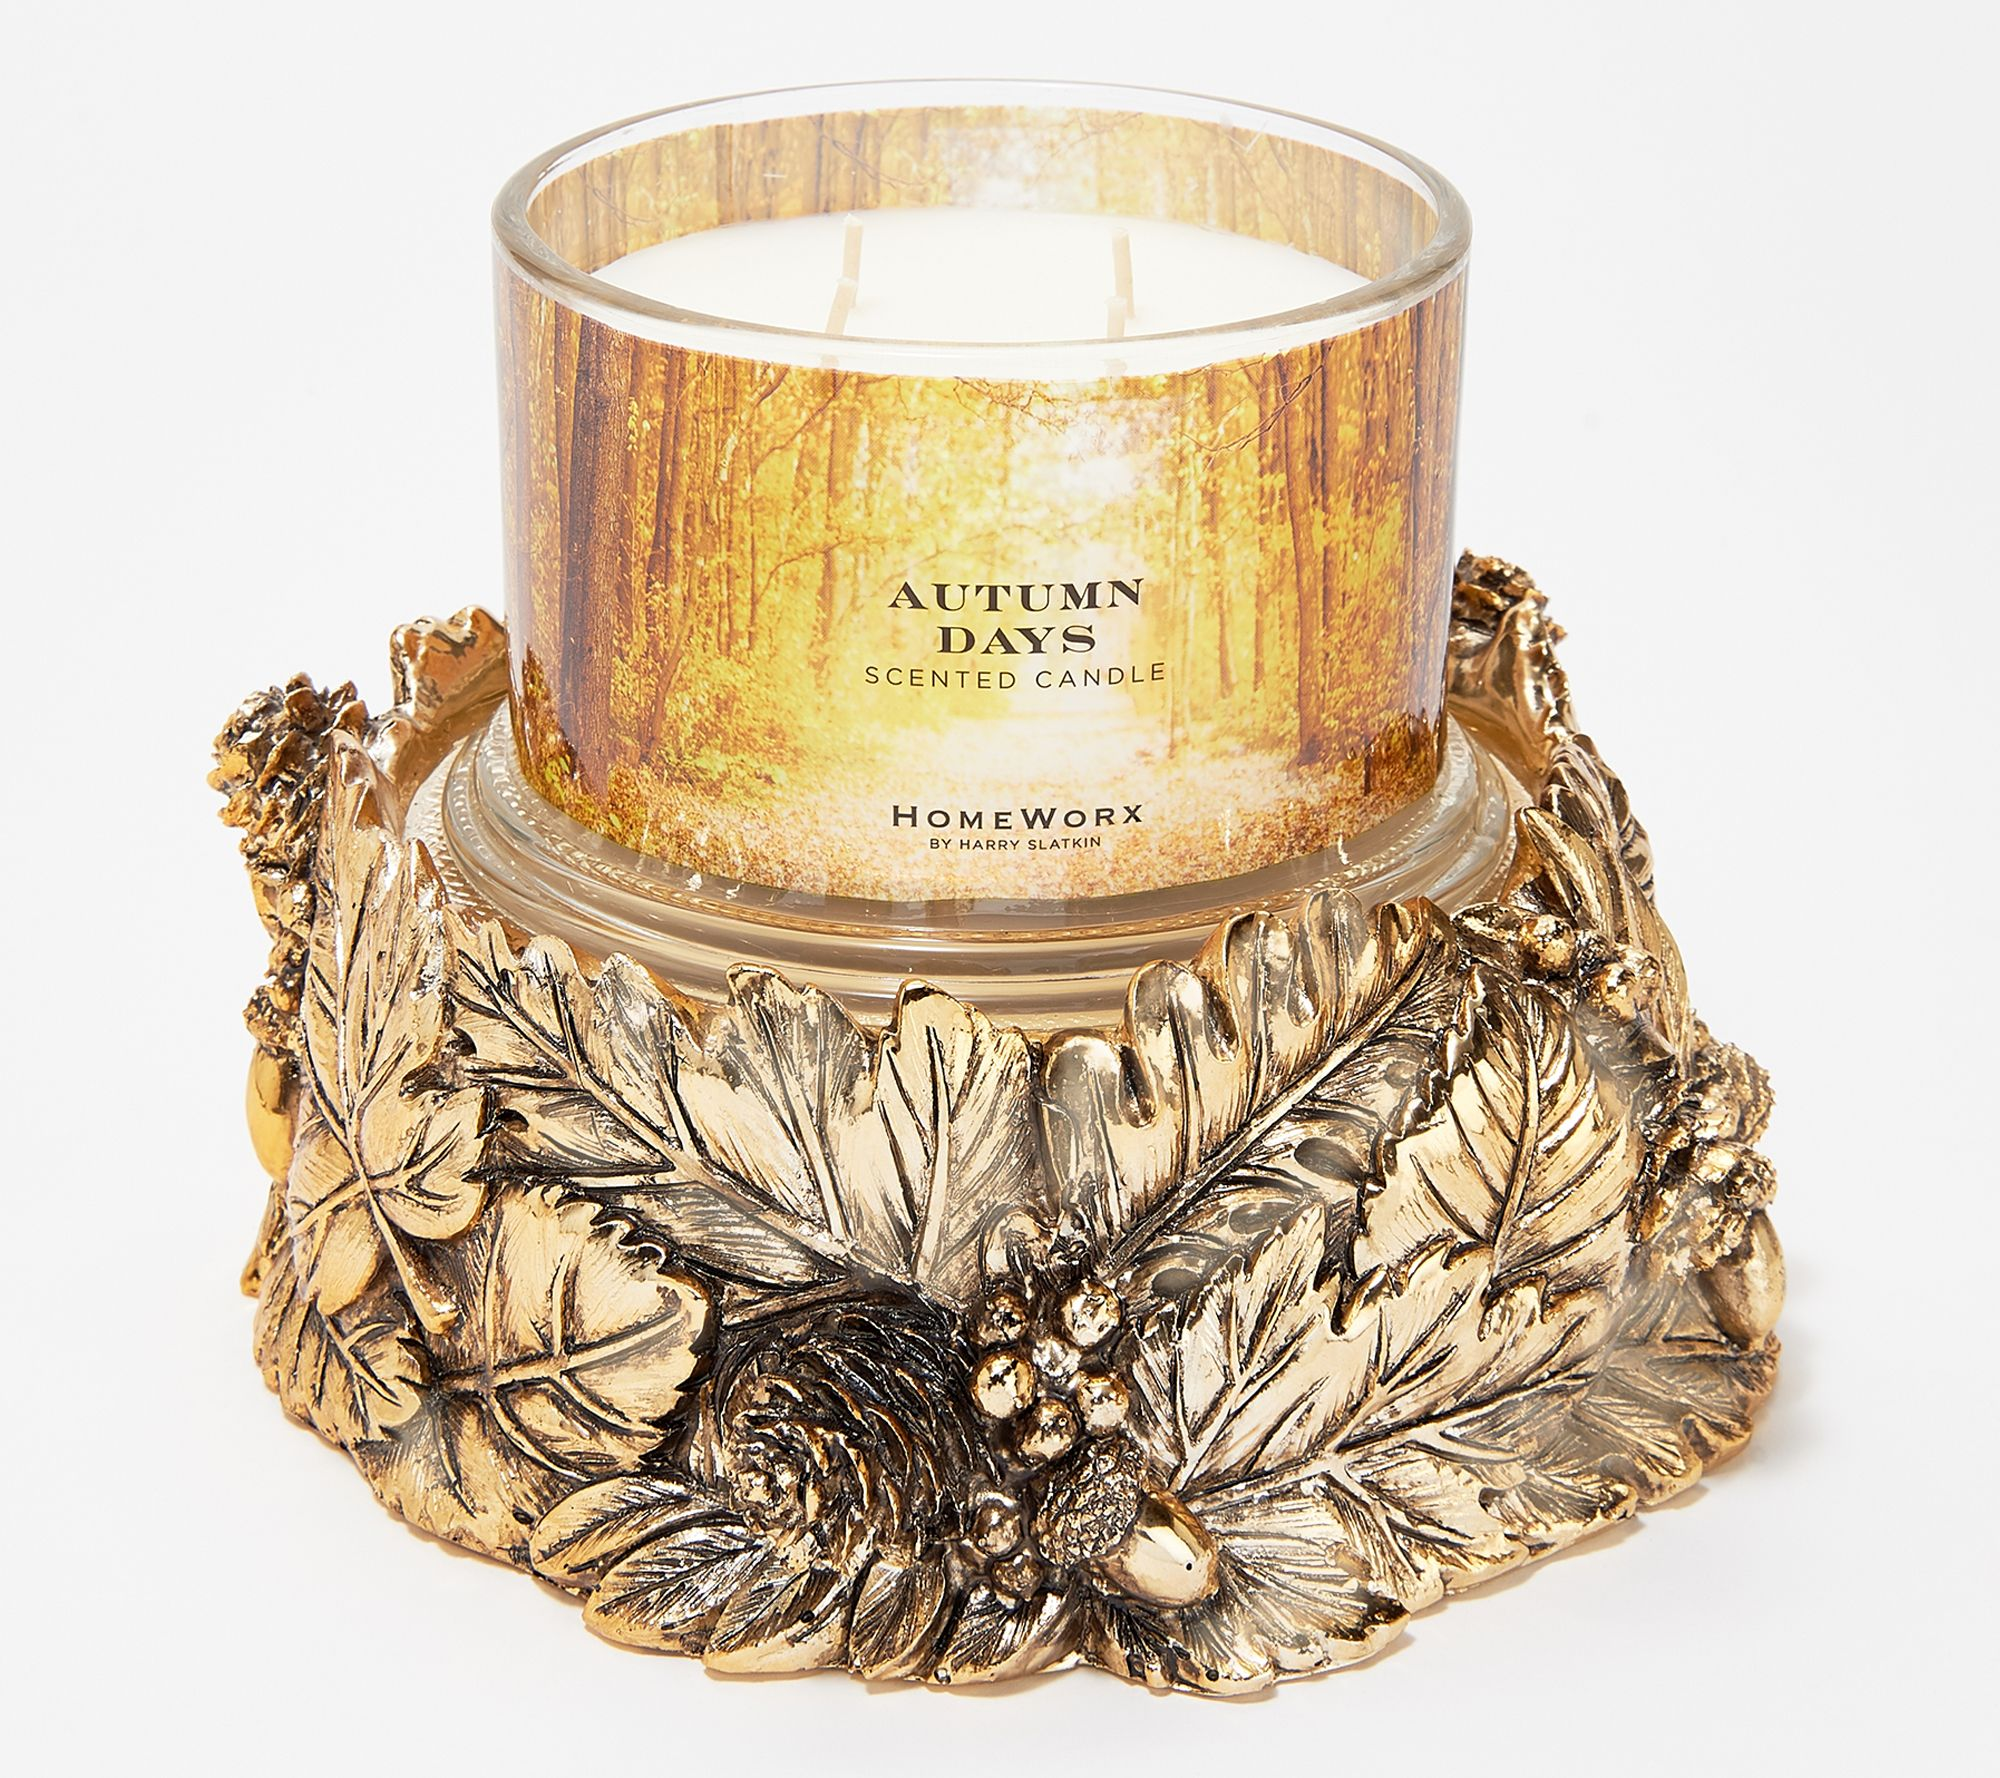 Cozy up your home with a fall foliage pedestal candle